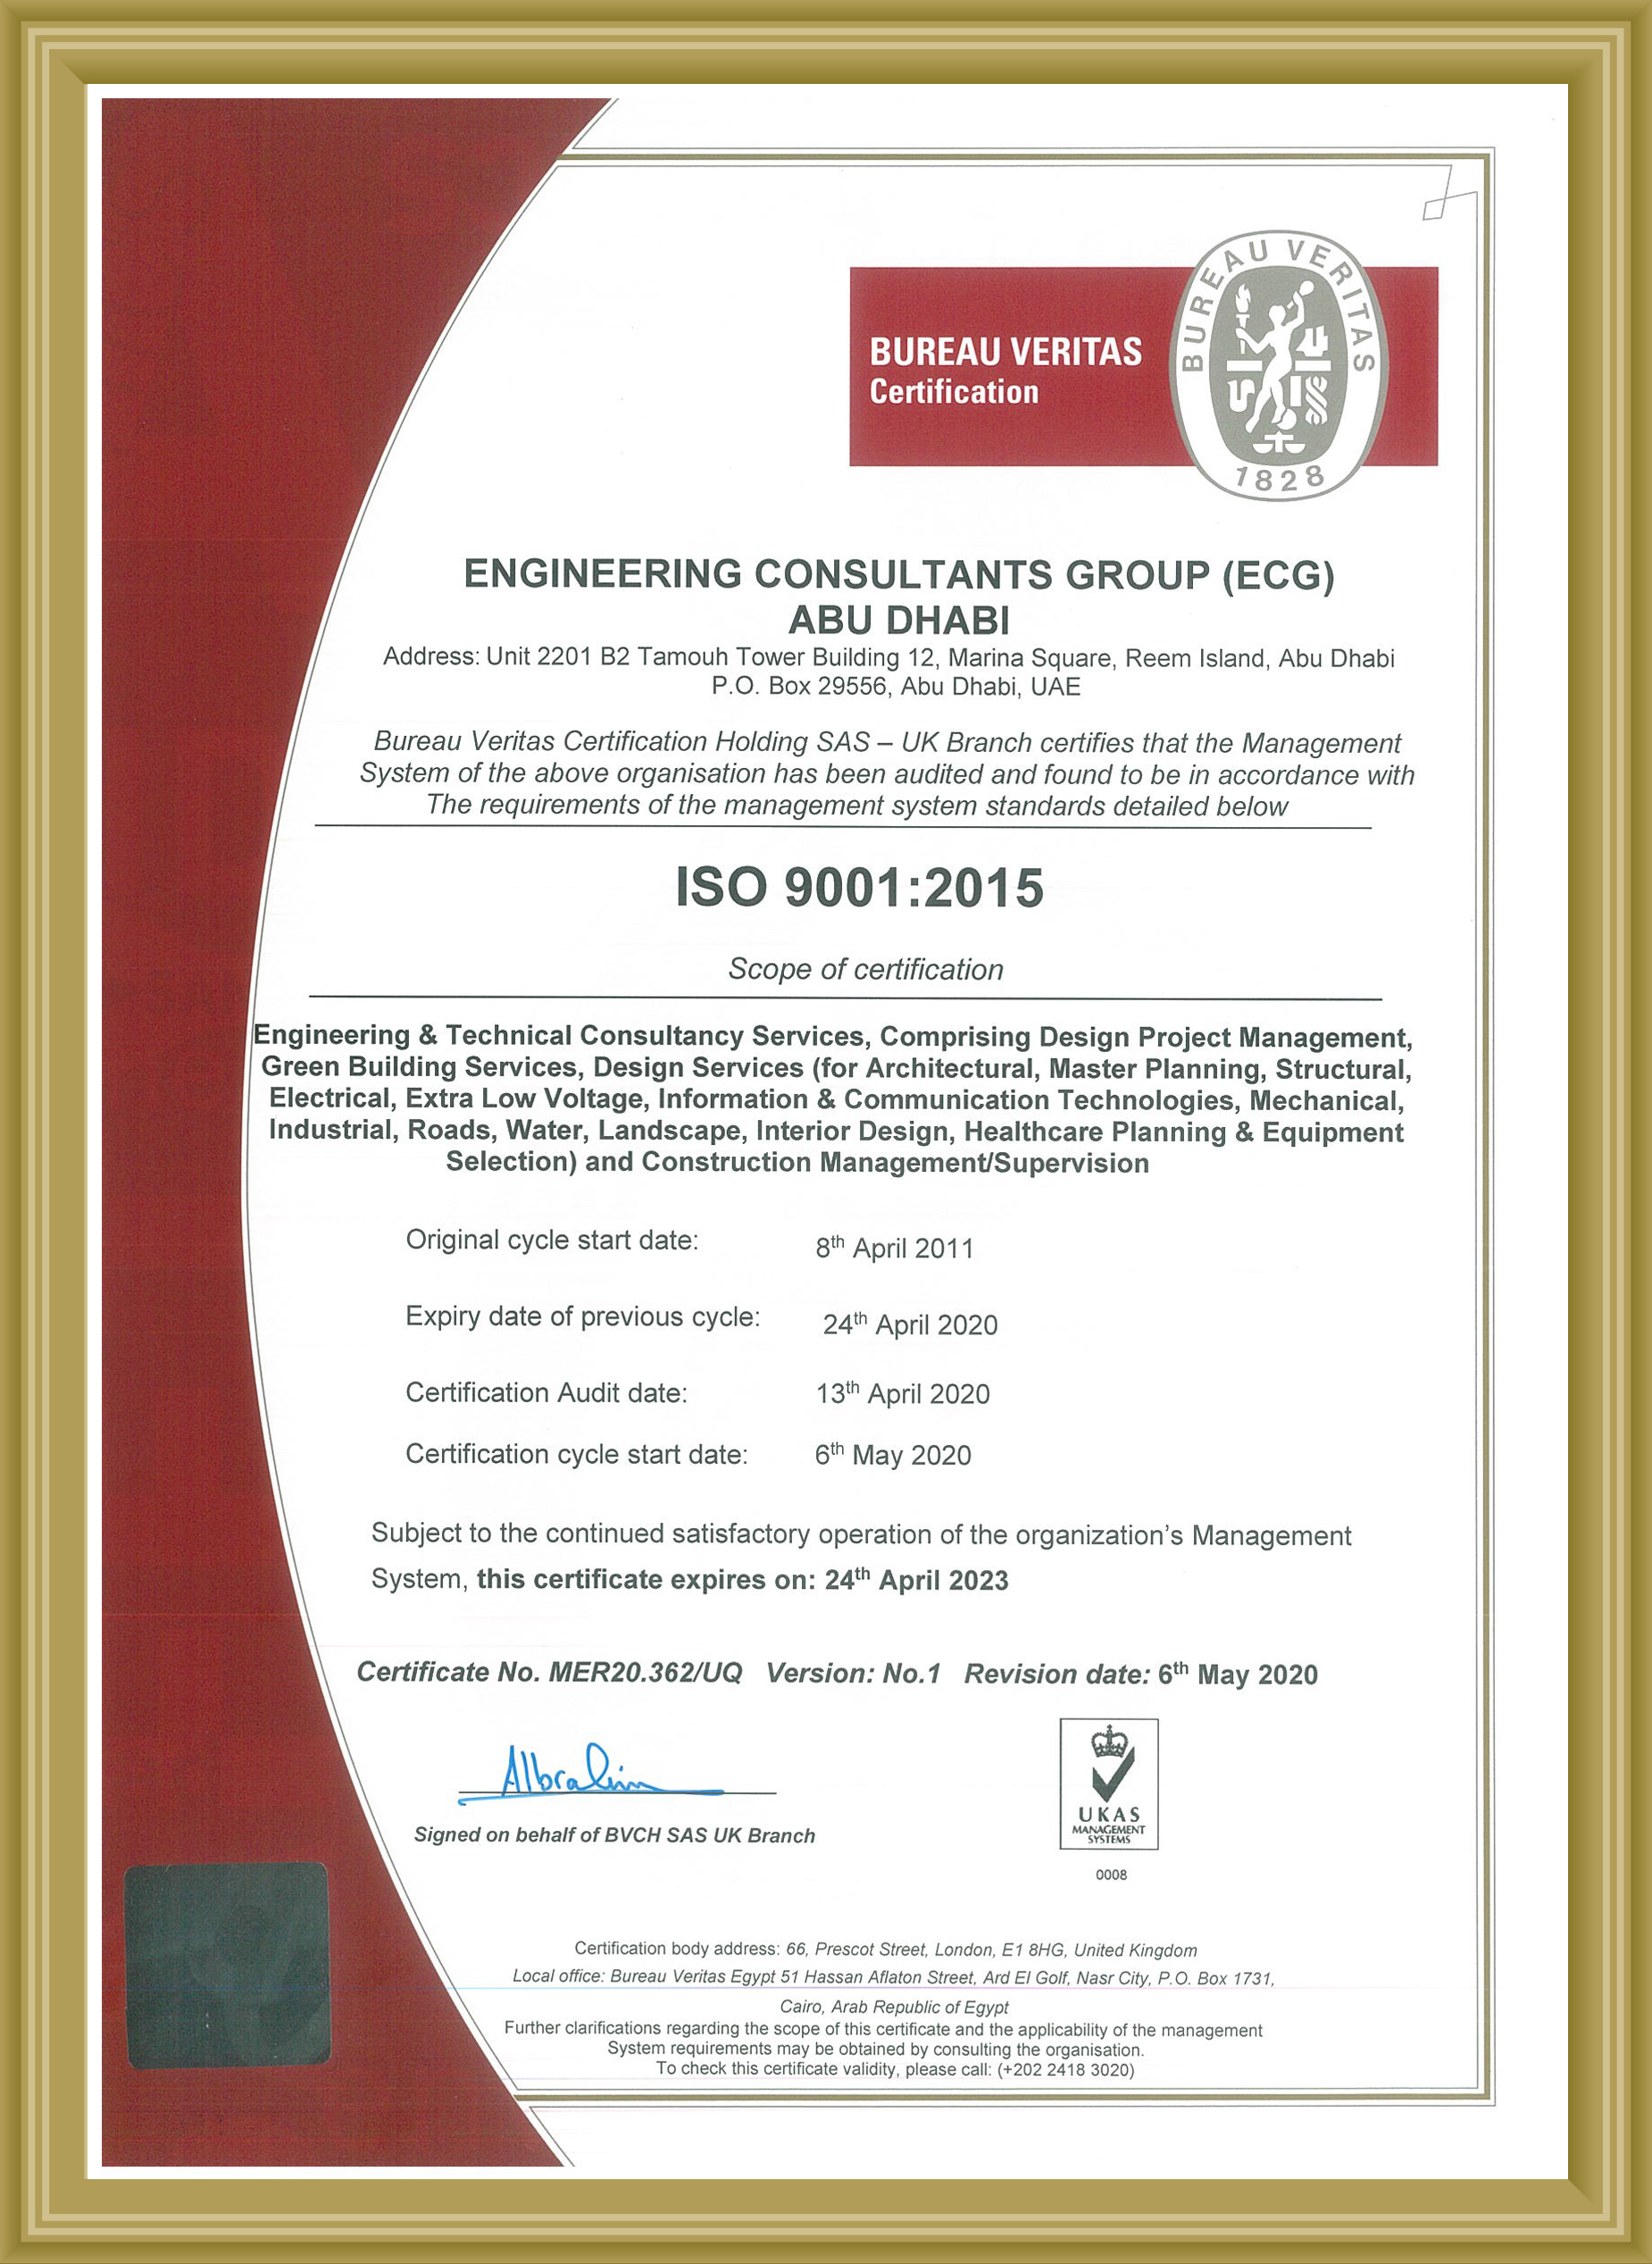 AUH ISO 9001 2015 Certification valid till APR 2023